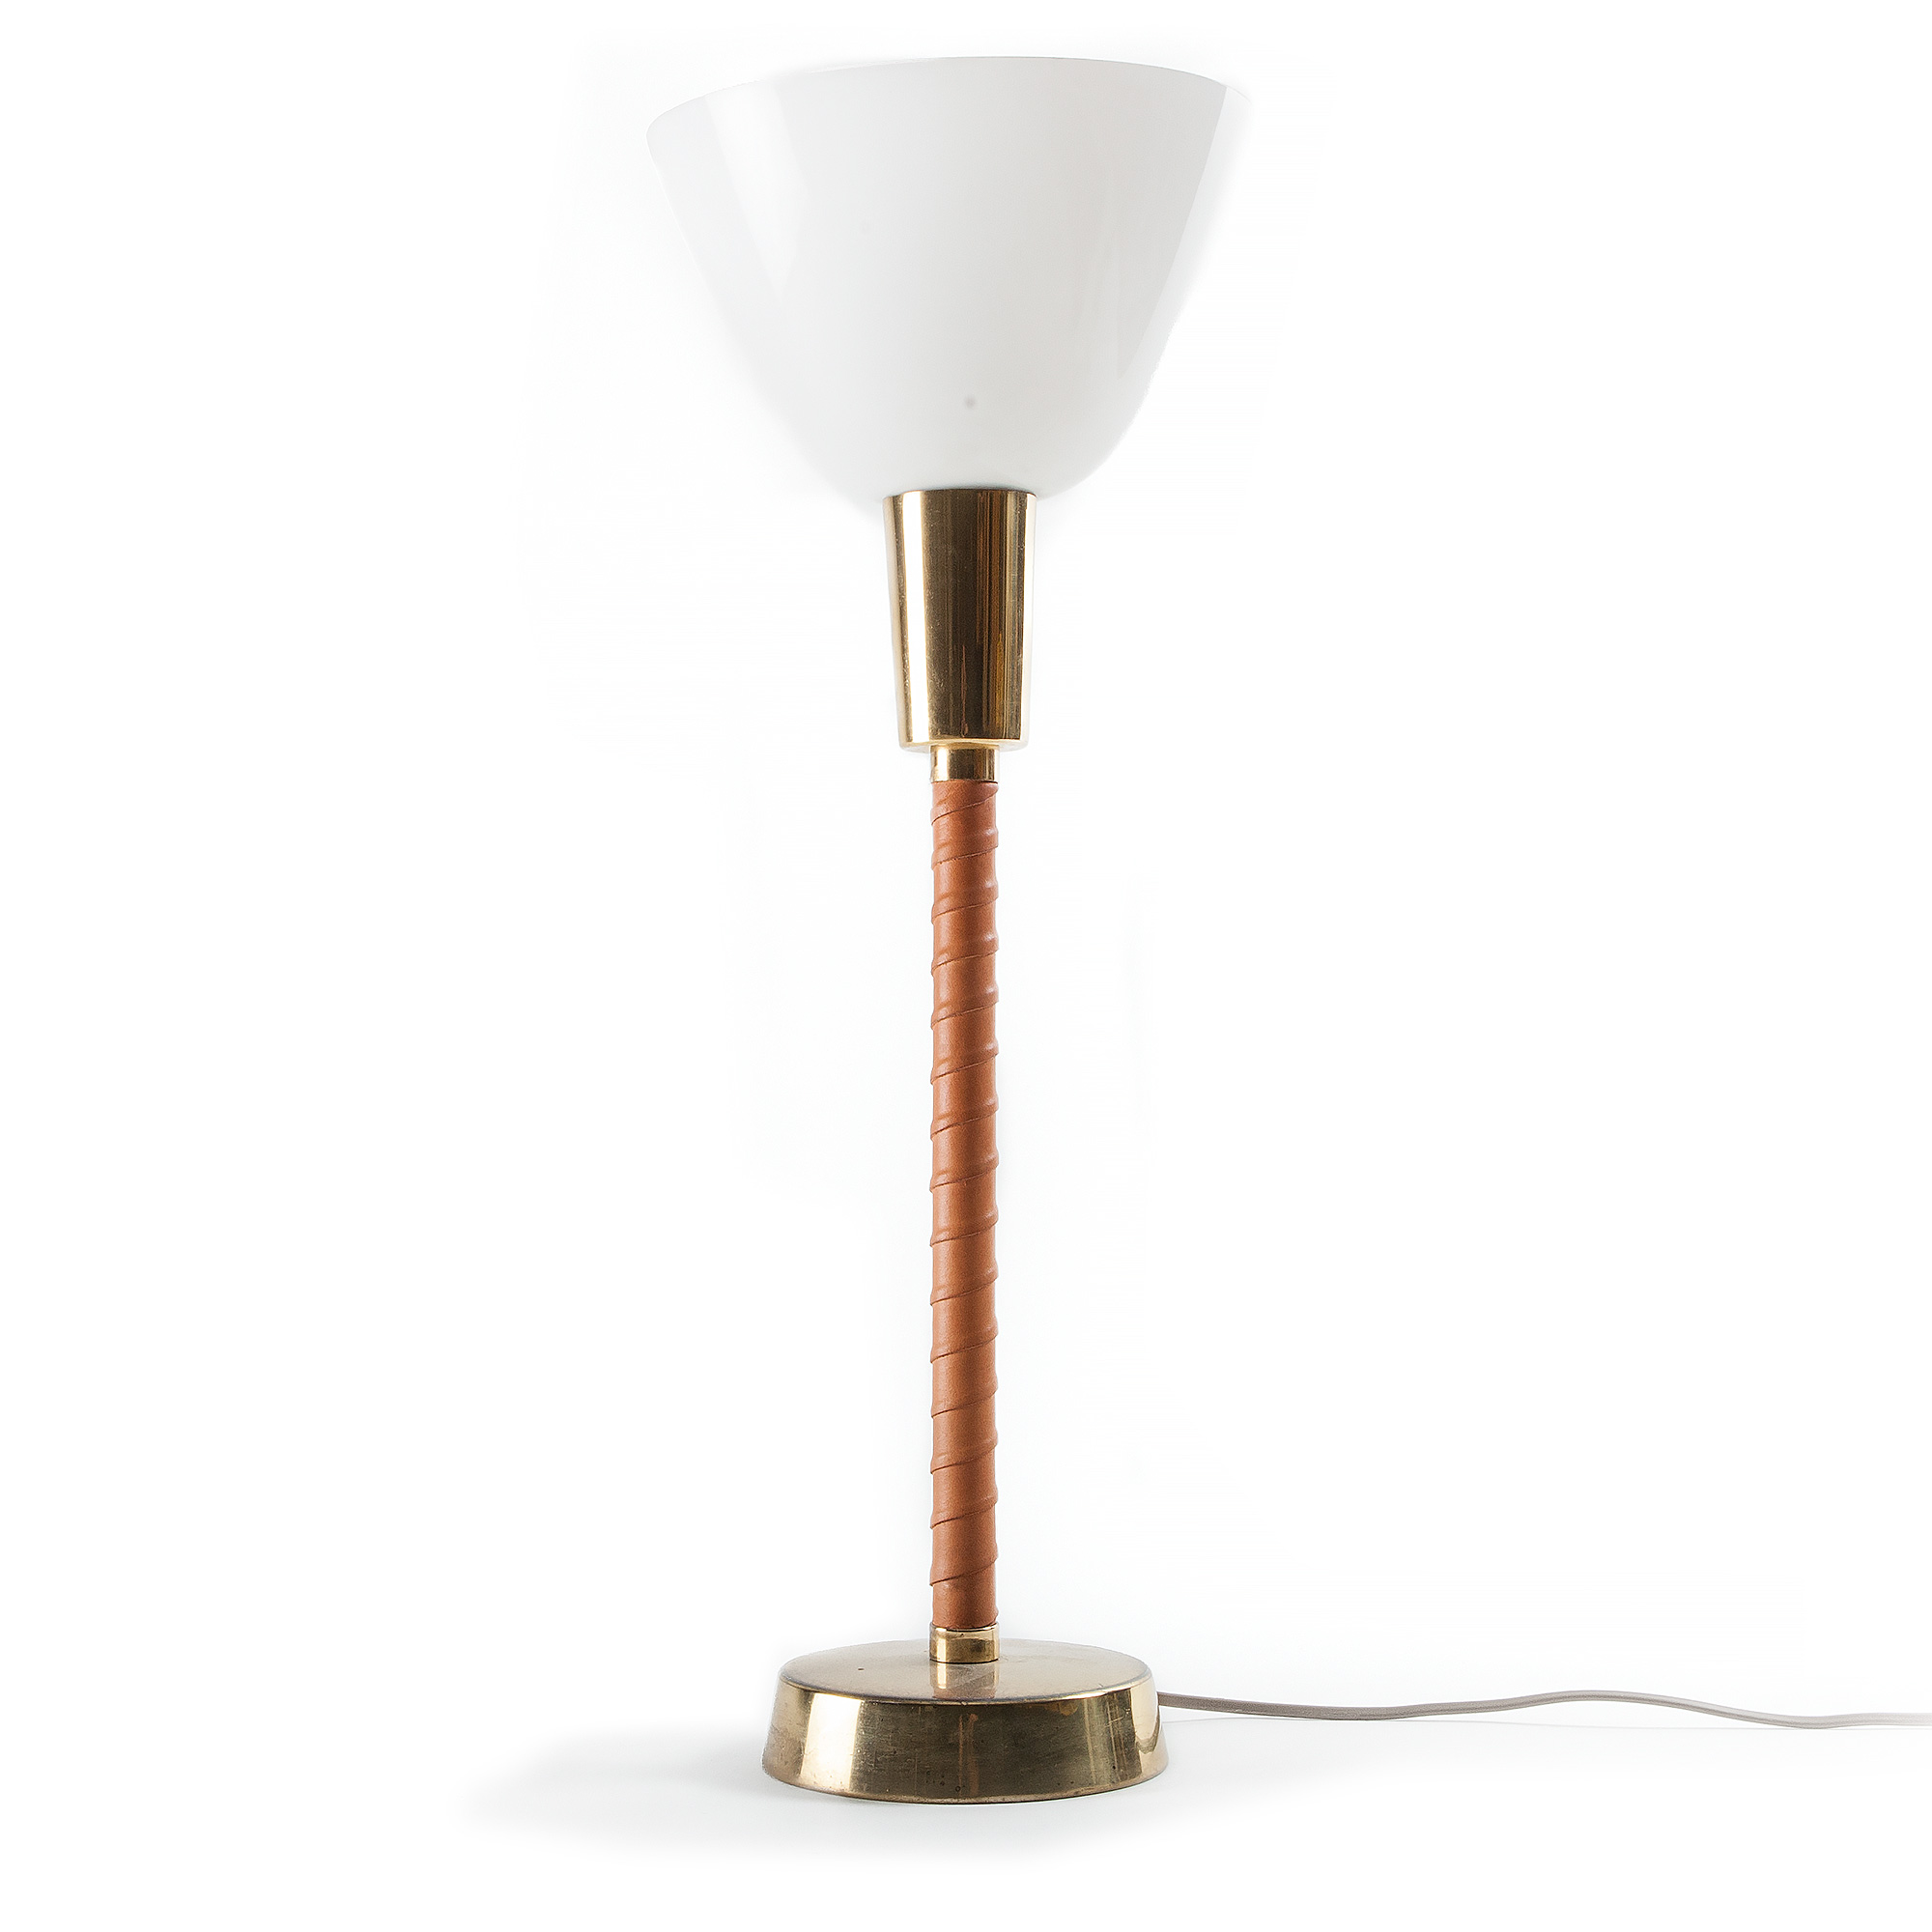 table-lamp_lisa-johansson-pape001